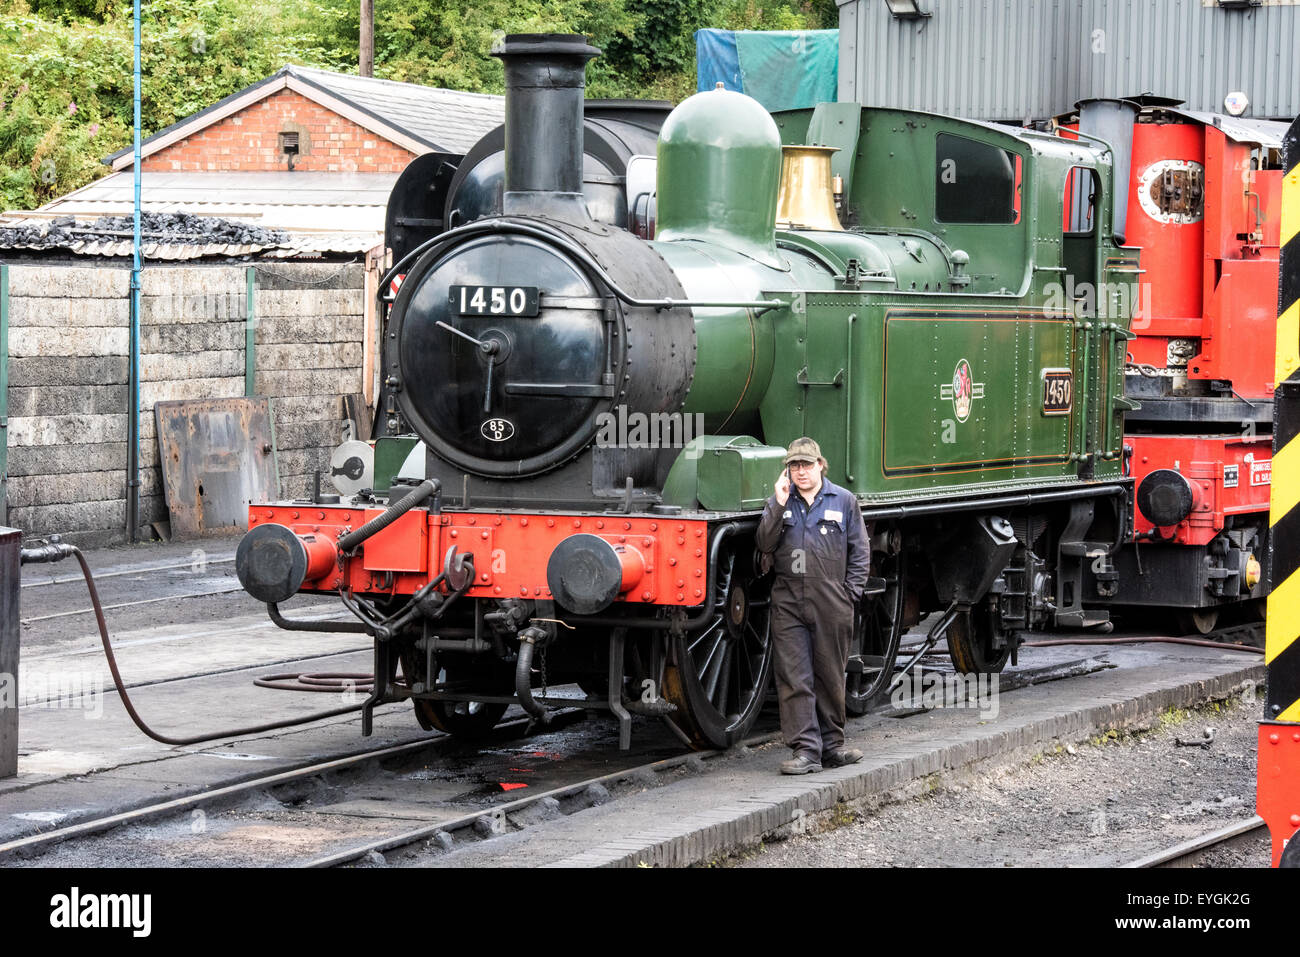 steam train engine number 1450 with Driver at severn valley railway in  Bridgnorth Shropshire